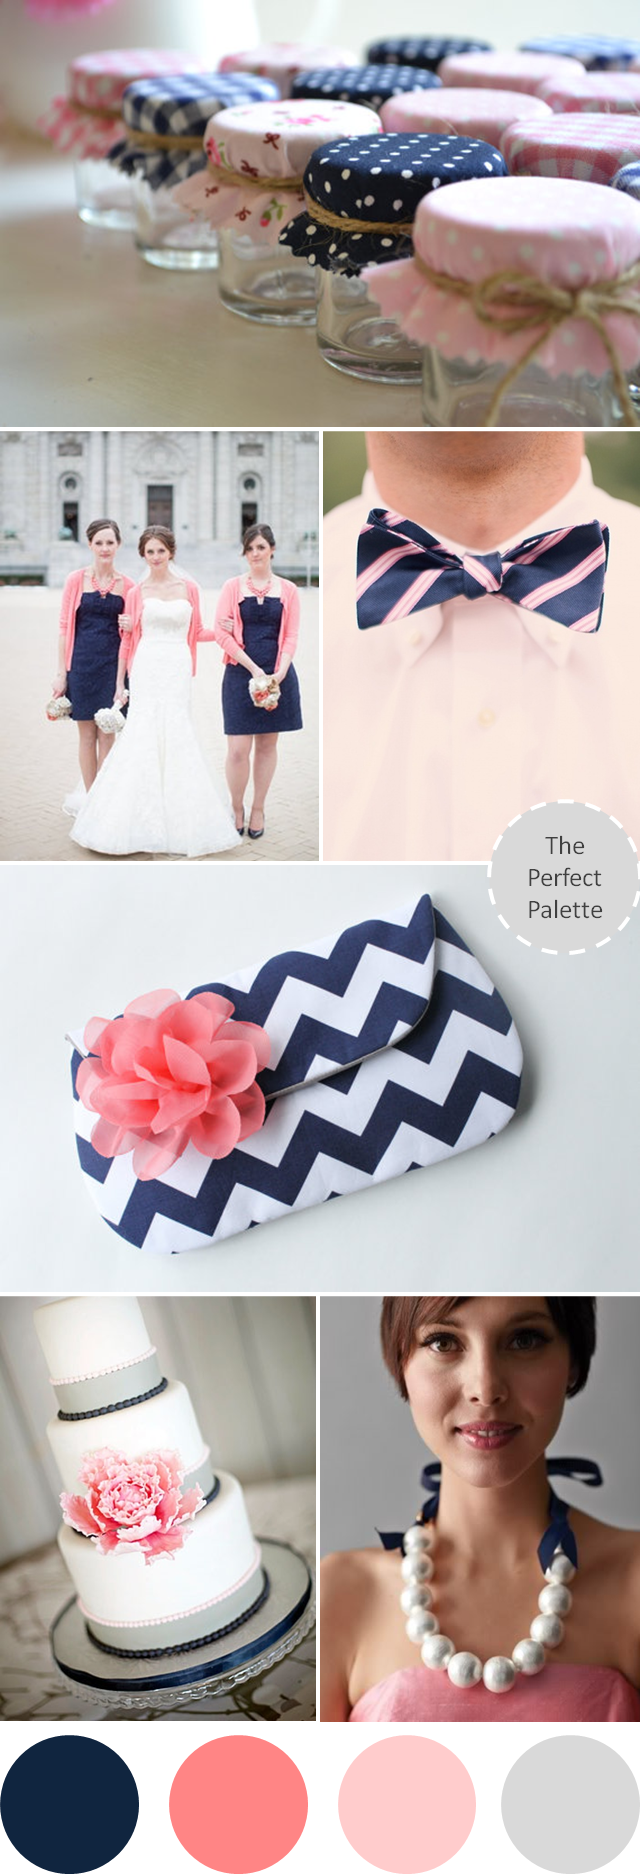 The Perfect Palette: {Wedding Colors I Love}: Navy Blue + Shades of Pink! http://www.theperfectpalette.com/2013/04/wedding-colors-i-love-navy-blue-shades.html